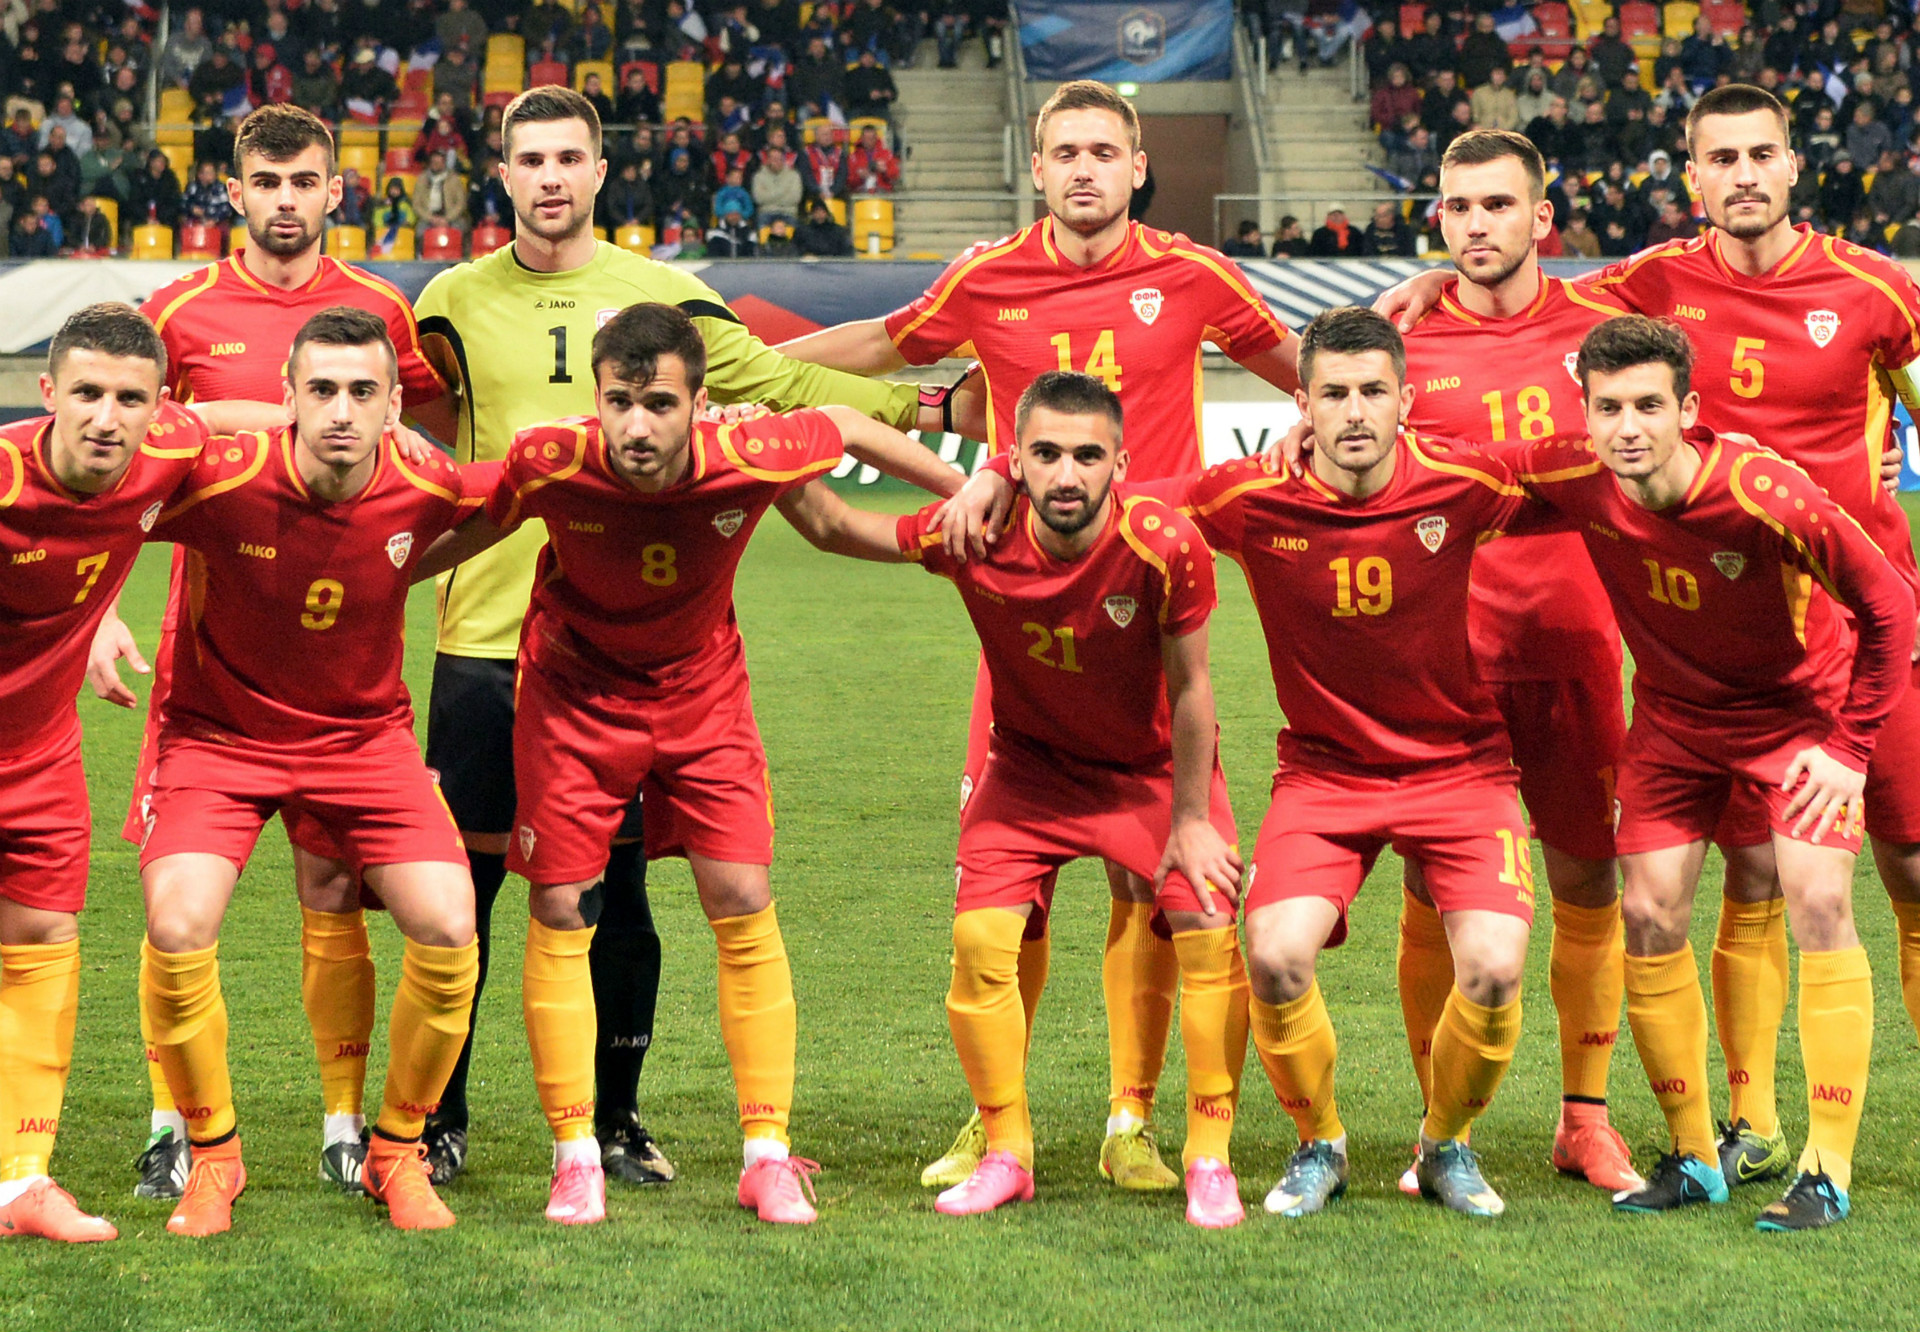 Macedonia U-21 team